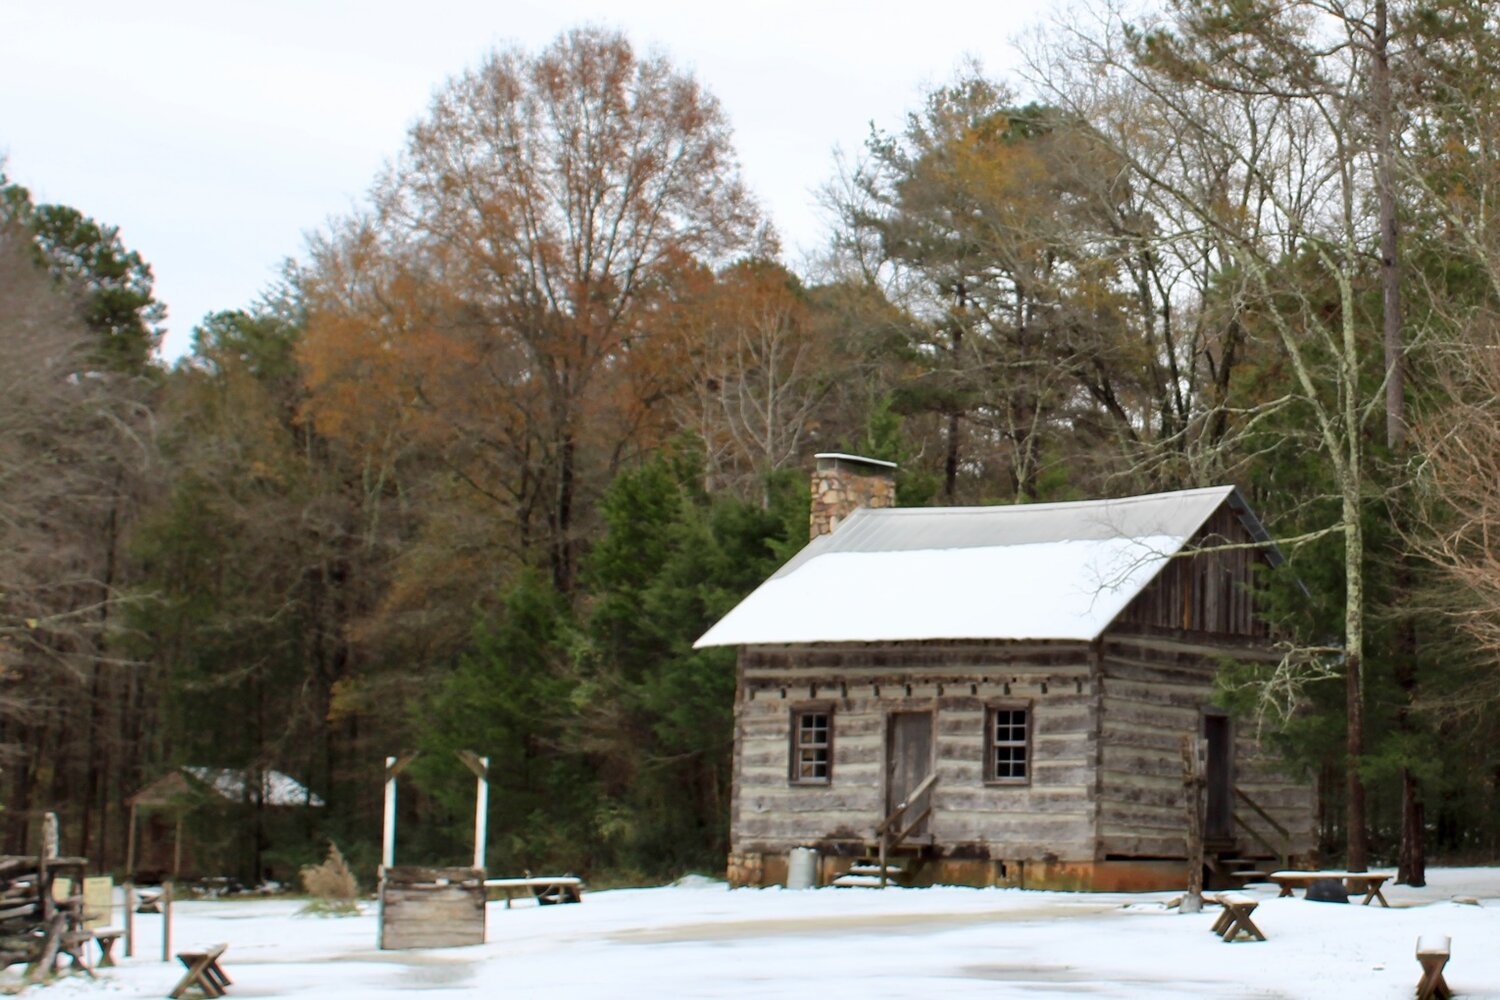 Image Courtesy: Historic Latta Plantation